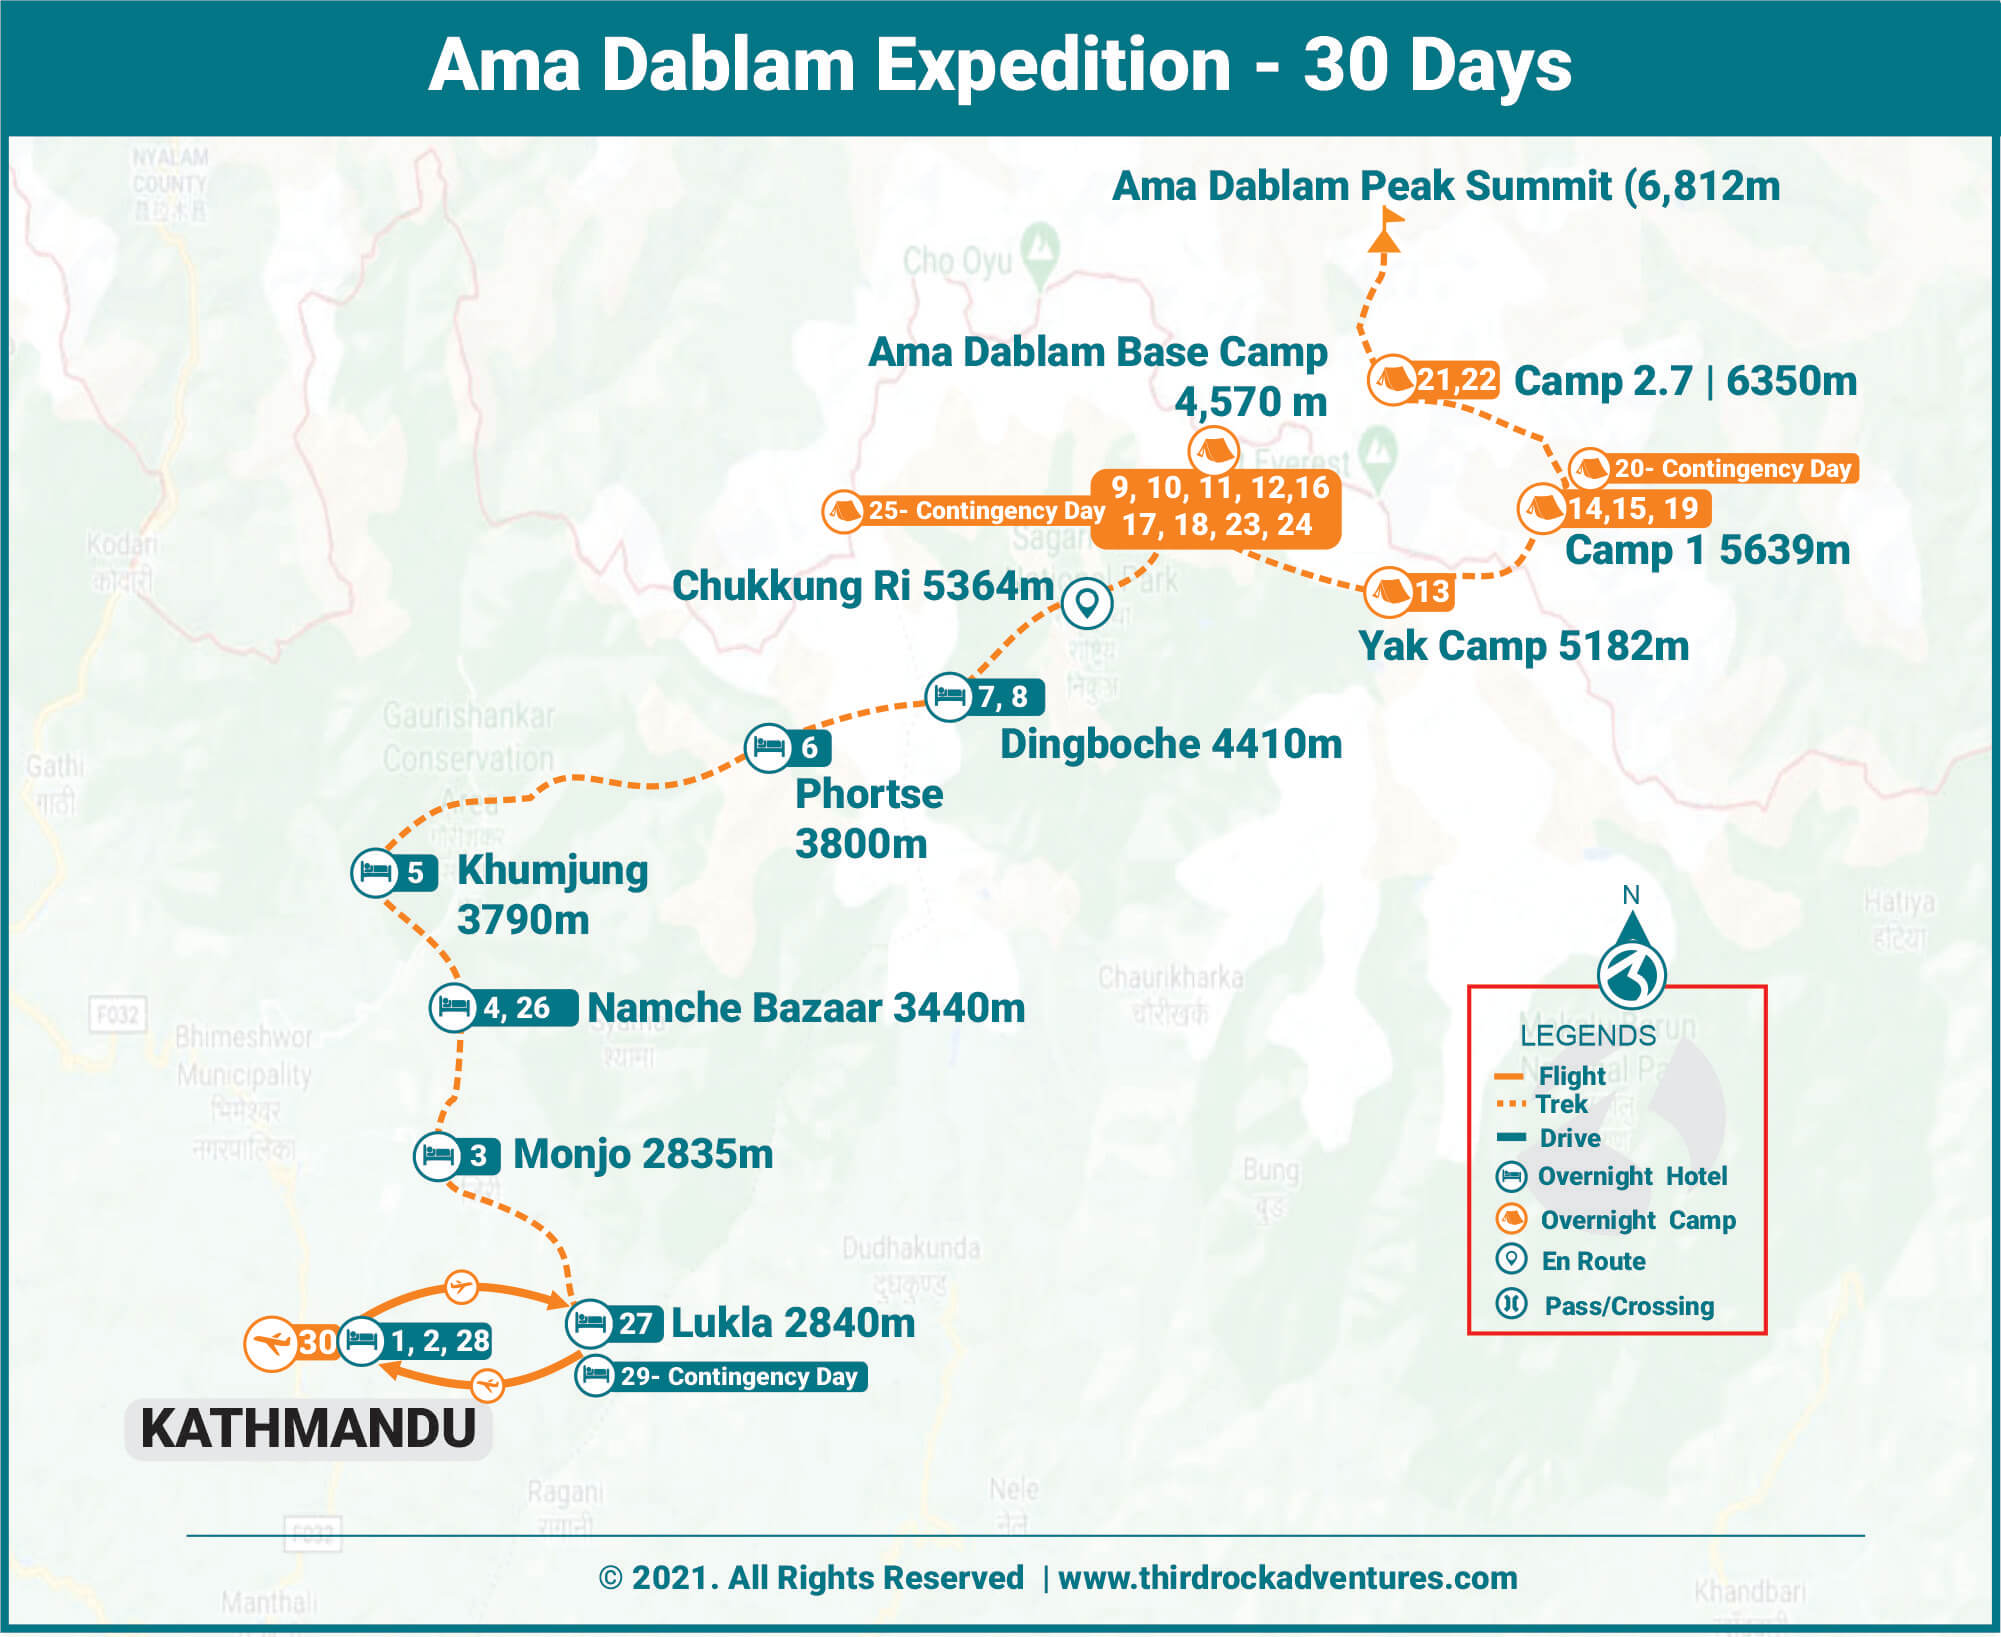 Ama Dablam Expedition Route Map